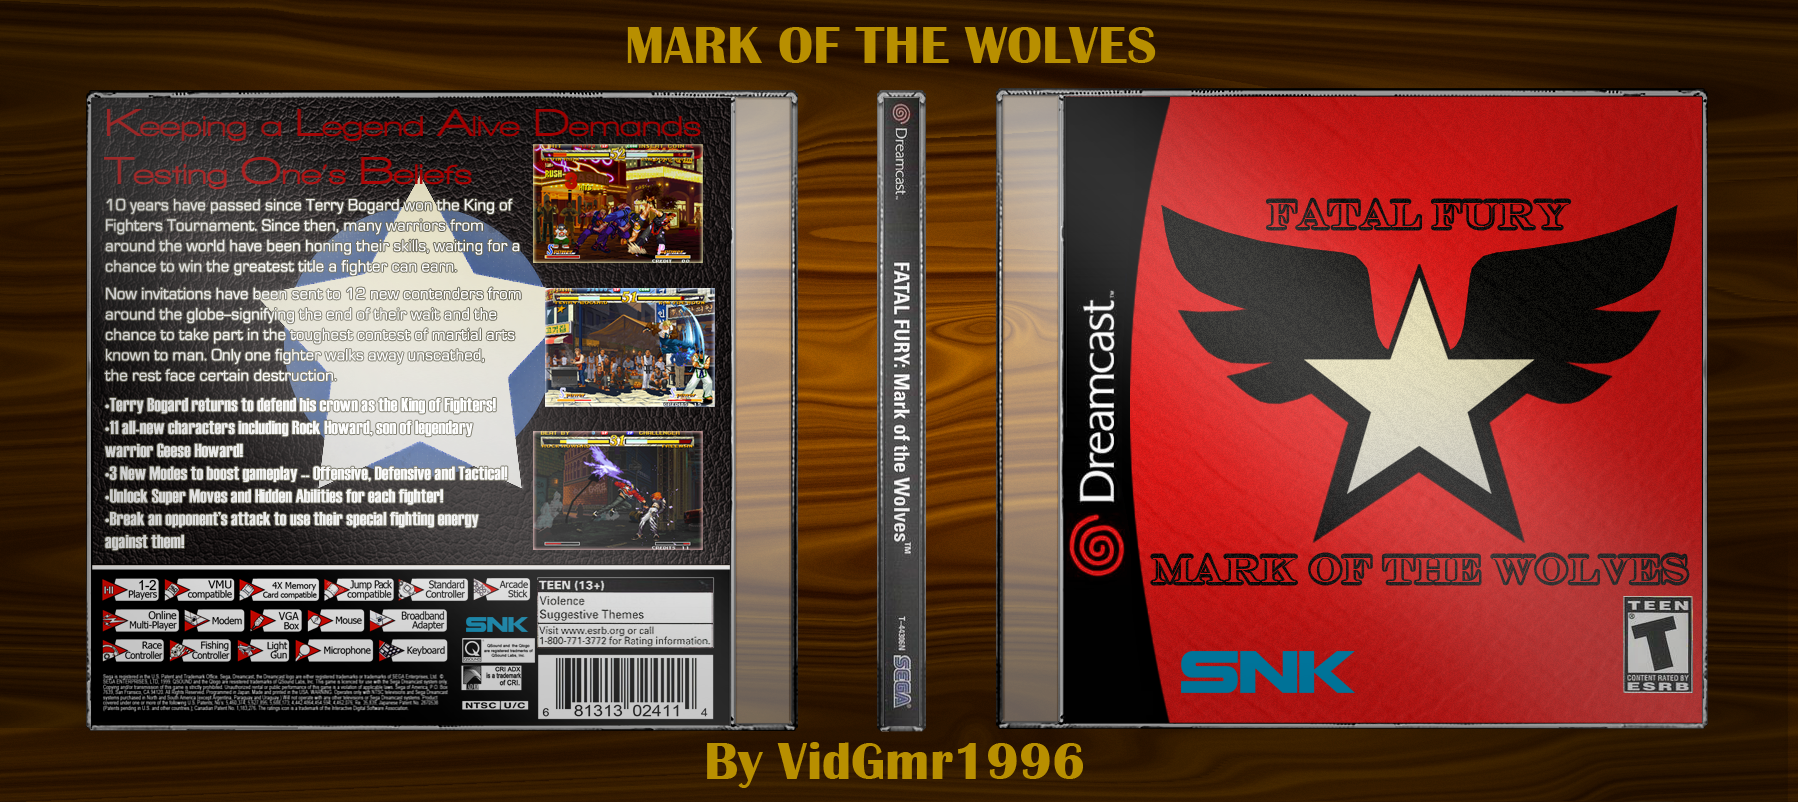 Fatal Fury: Mark of the Wolves box cover